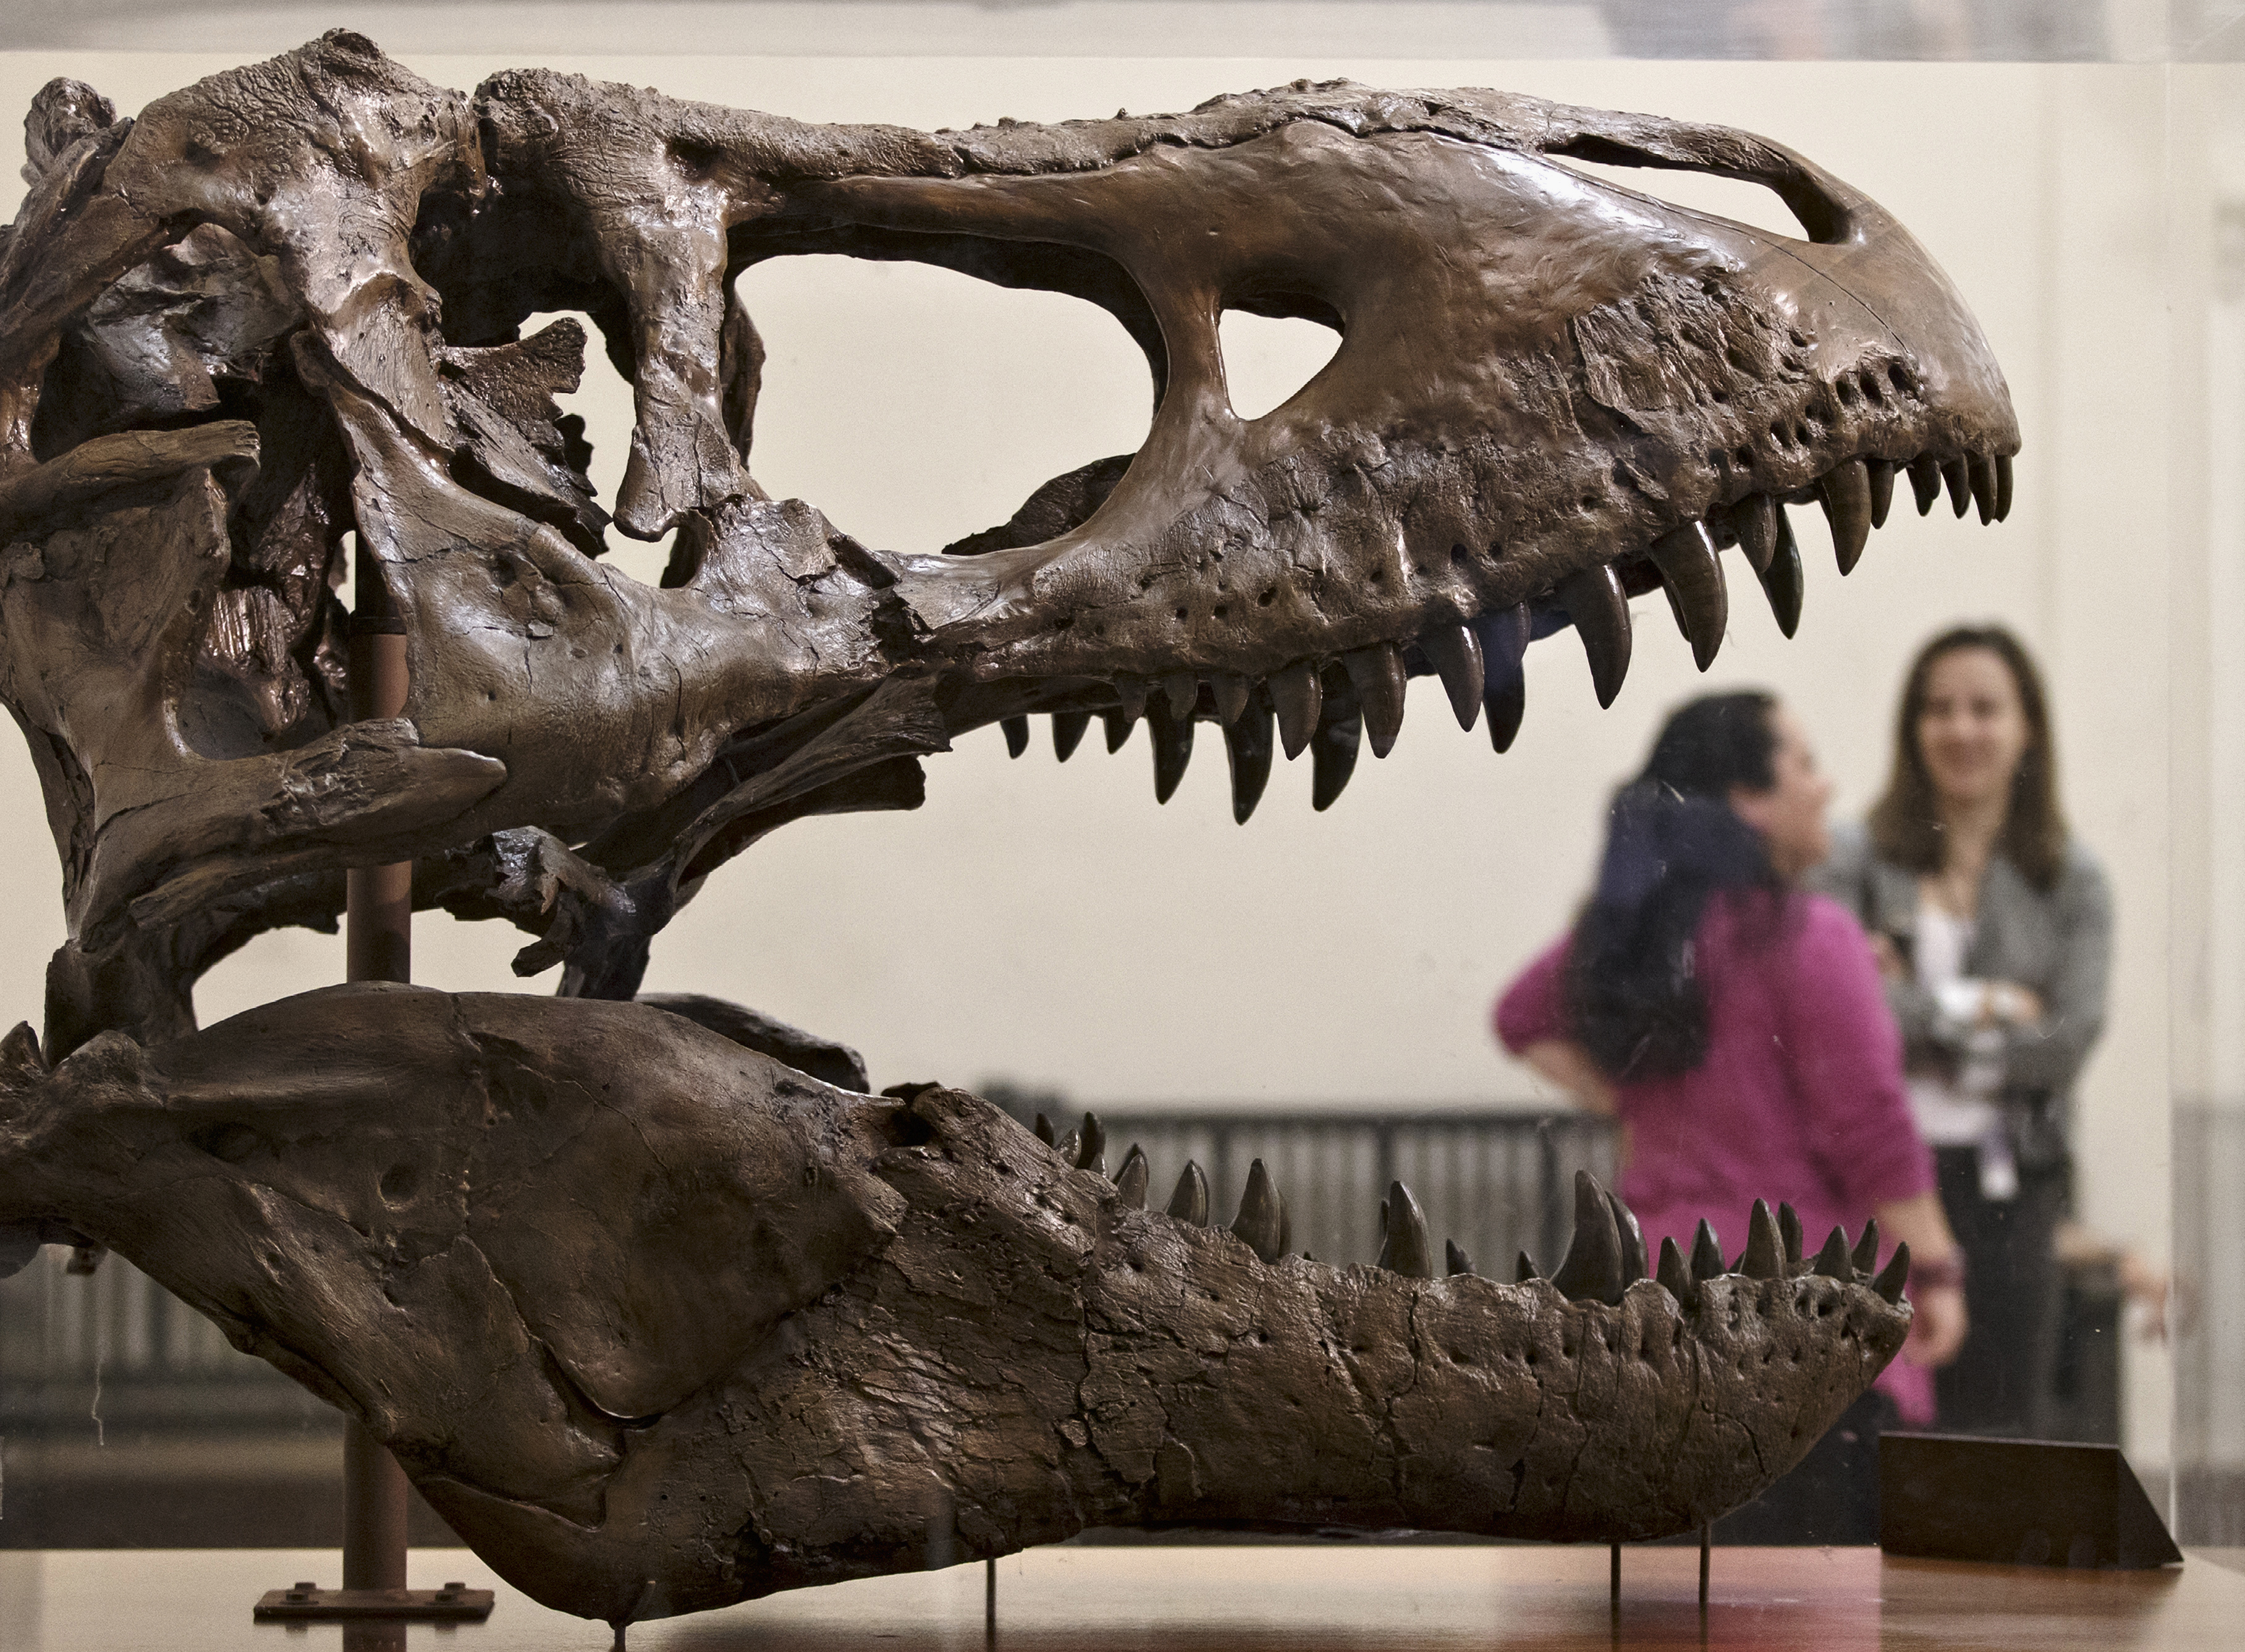 In this April 15, 2014 file photo, a cast of a Tyrannosaurus rex discovered in Montana greets visitors as they enter the Smithsonian Museum of Natural History in Washington. (AP Photo/J. Scott Applewhite, File)